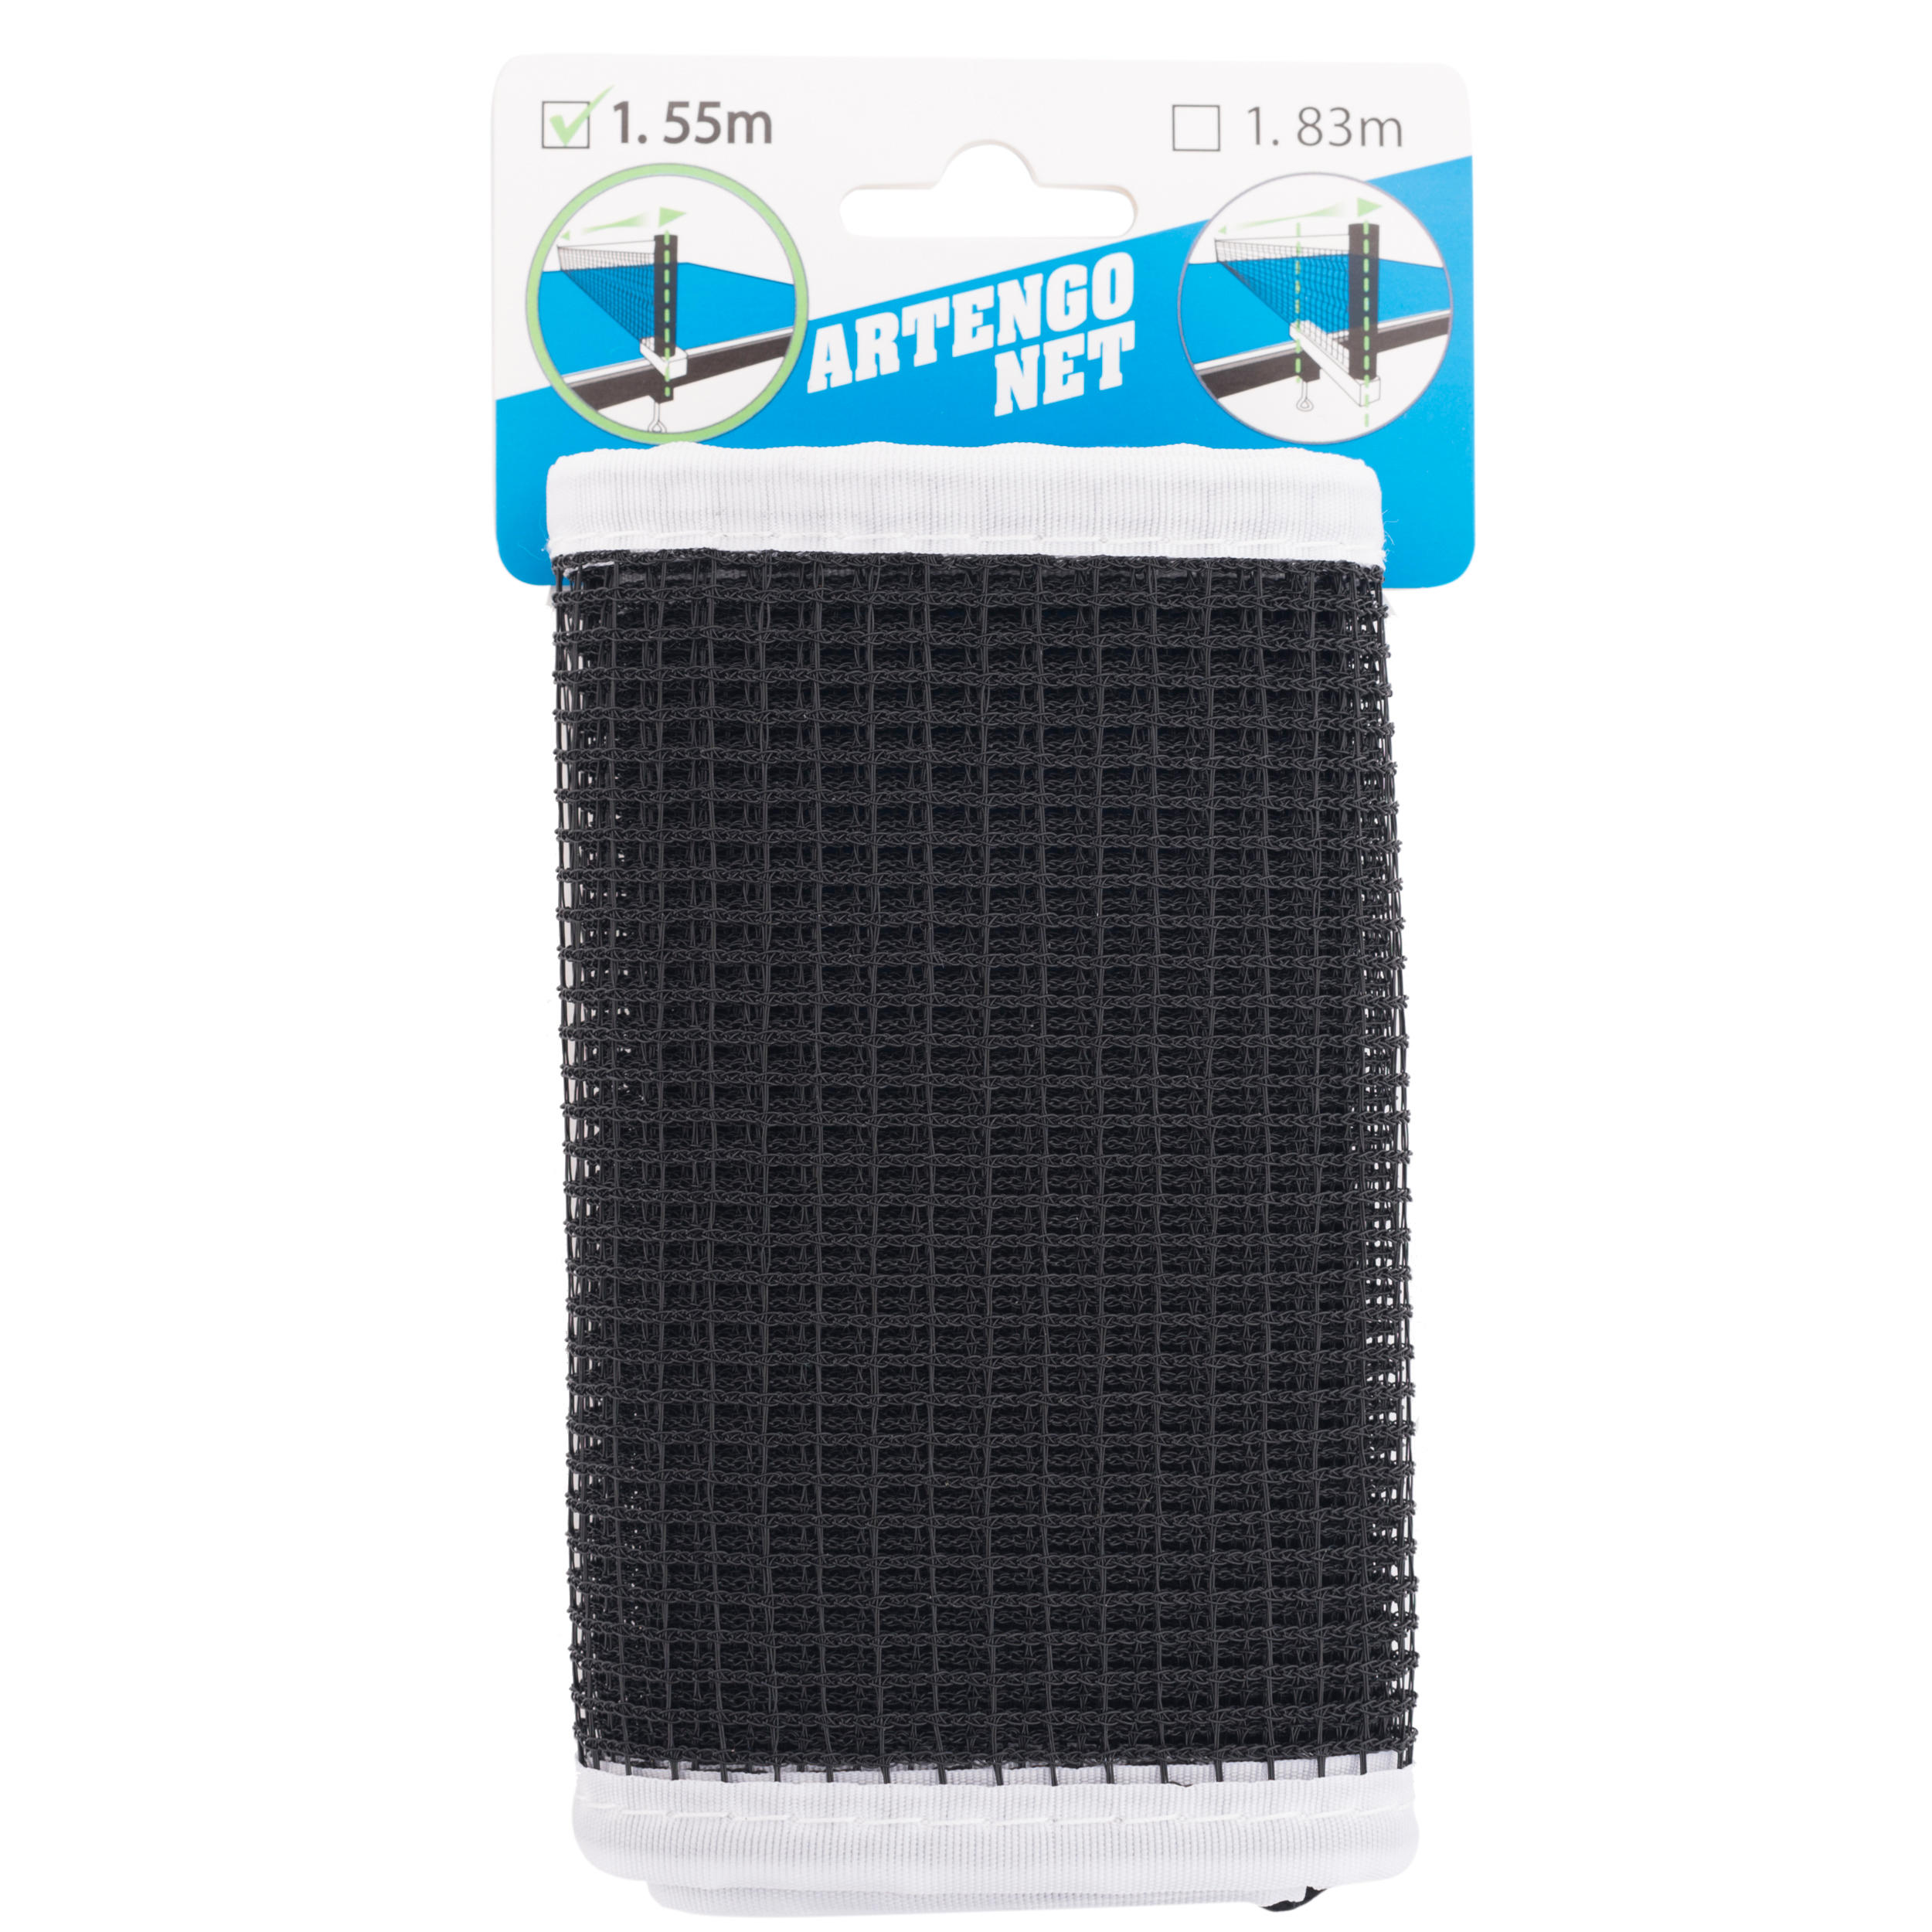 155 cm Table Tennis Net